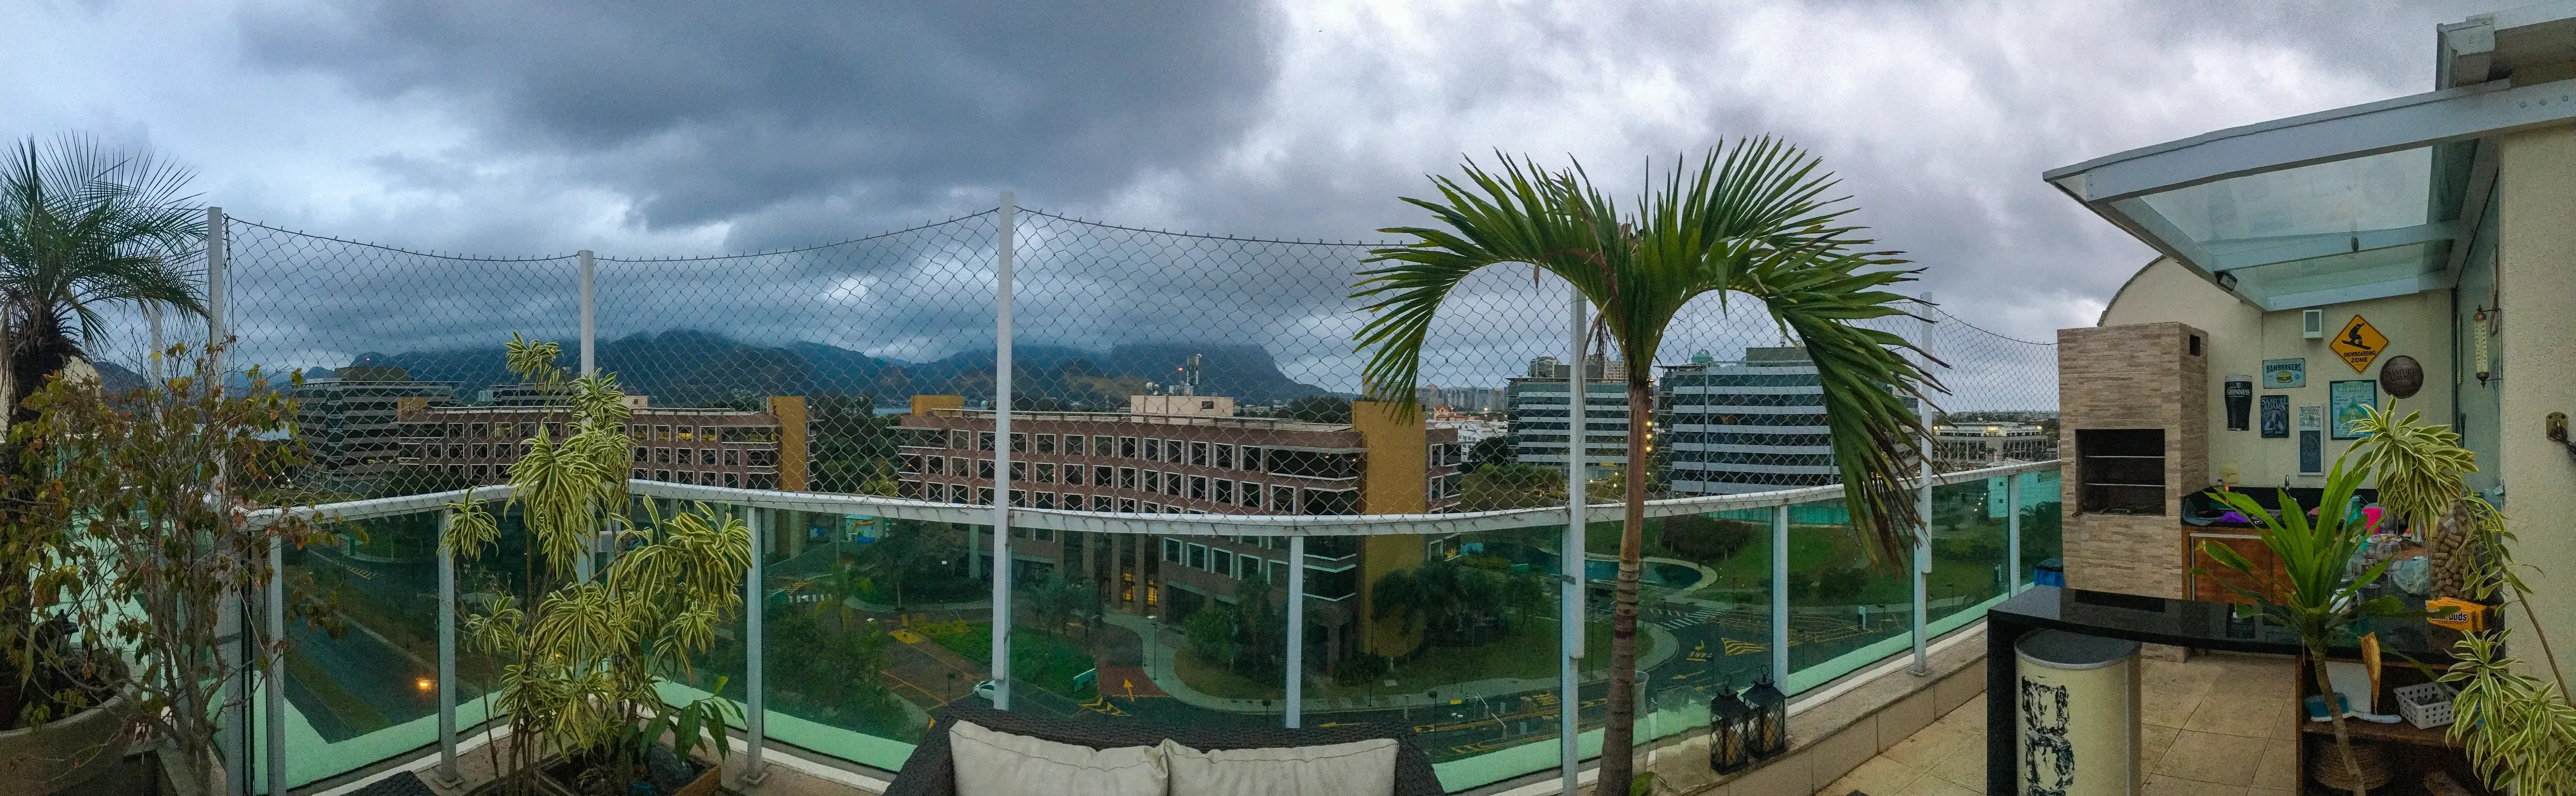 The view from George and Paty's rooftop.